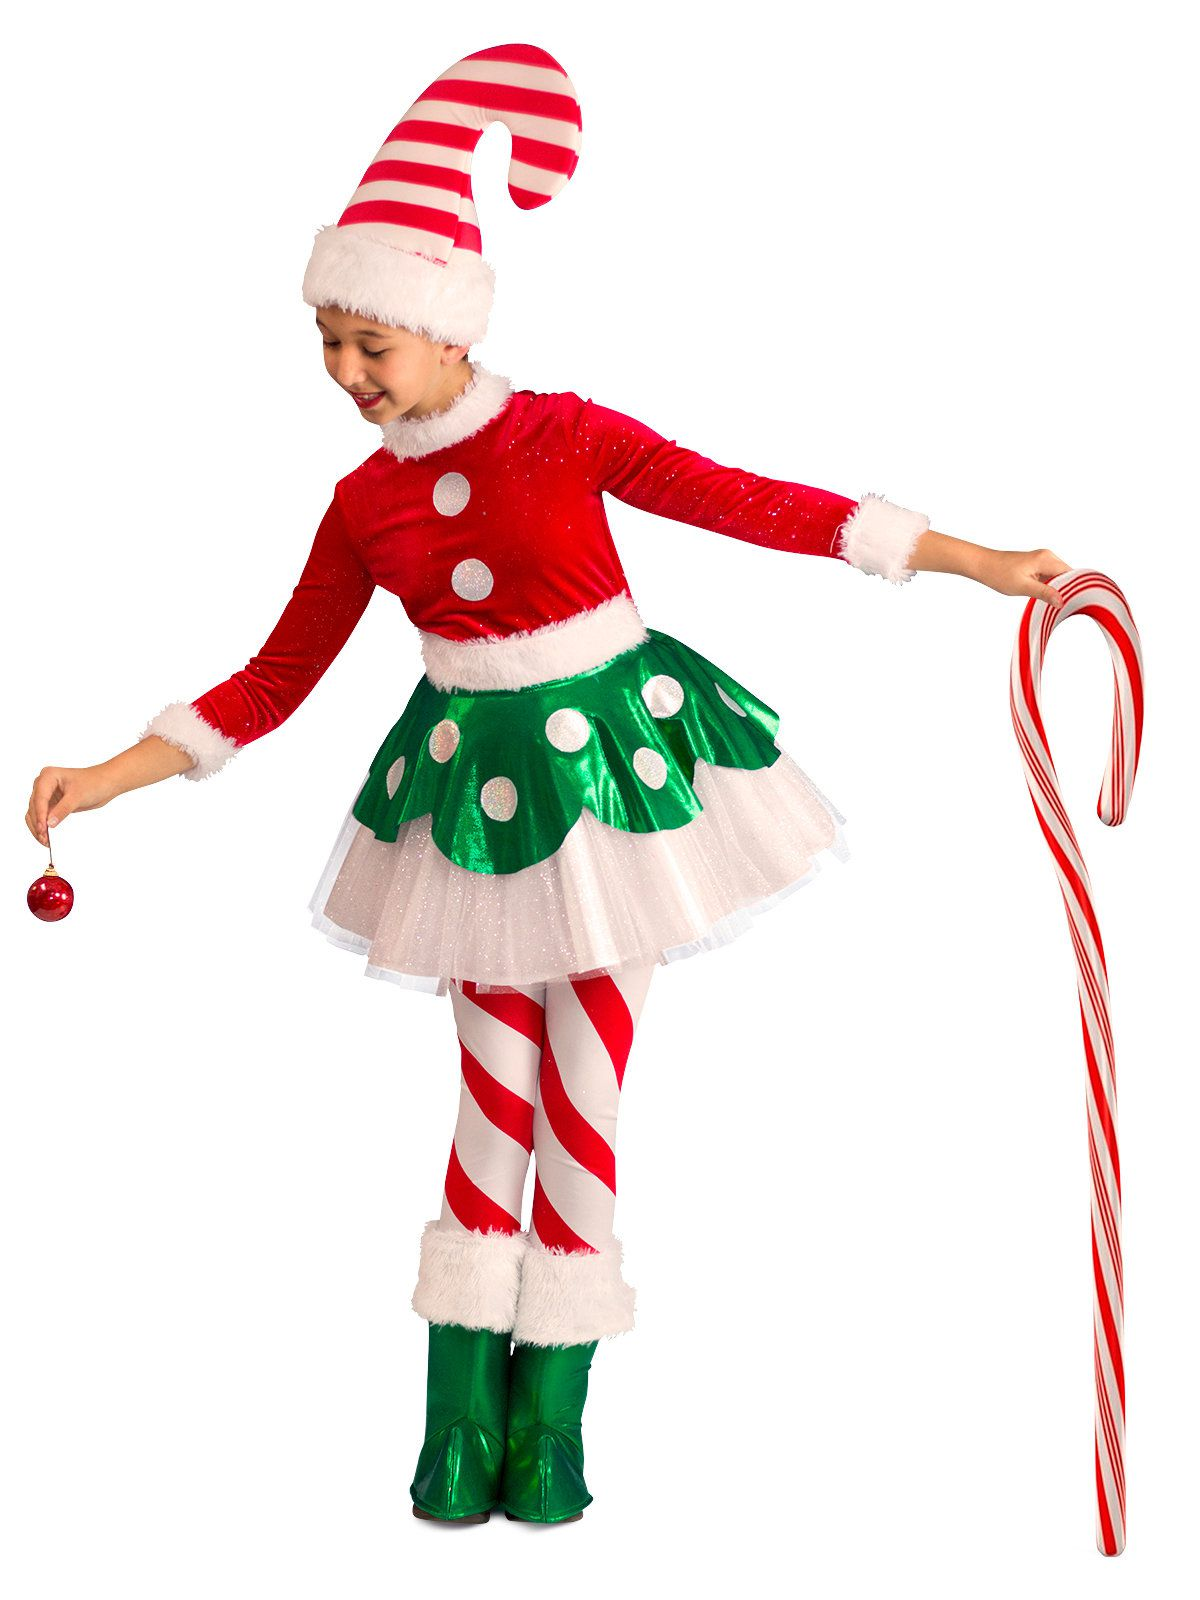 Original Costumes For Kids.Toddler Child Christmas Candy Cane Princess Costume Kids